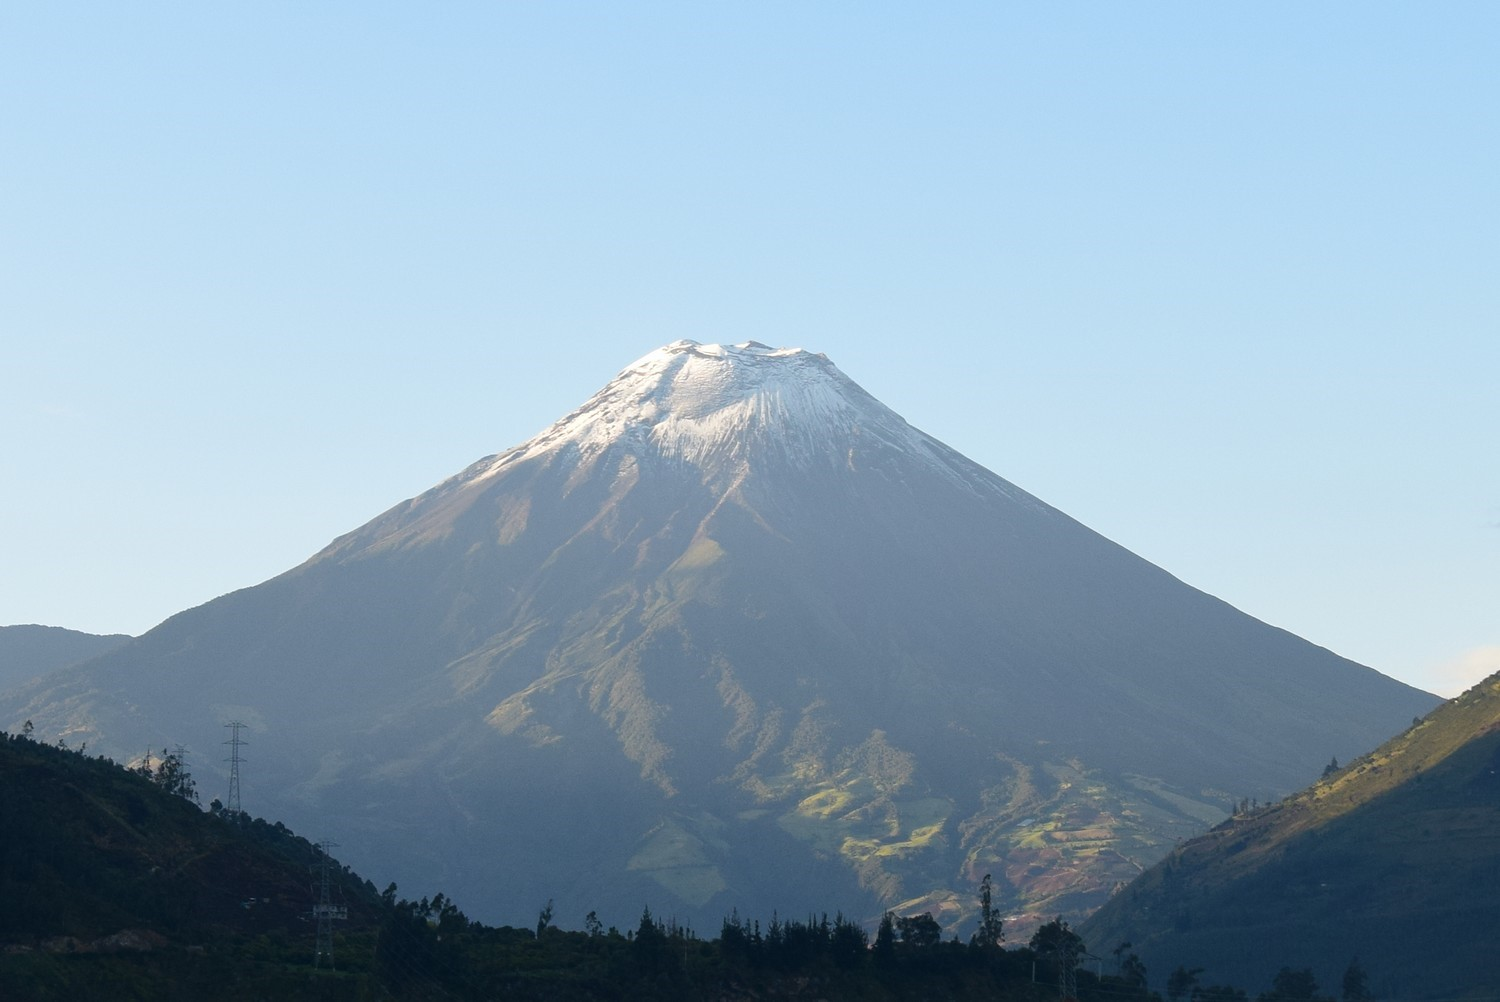 Tungurahua volcano in apparent calm on 31 May 2016 (image: S. Mr. Aguaiza, OVT-IGEPN).